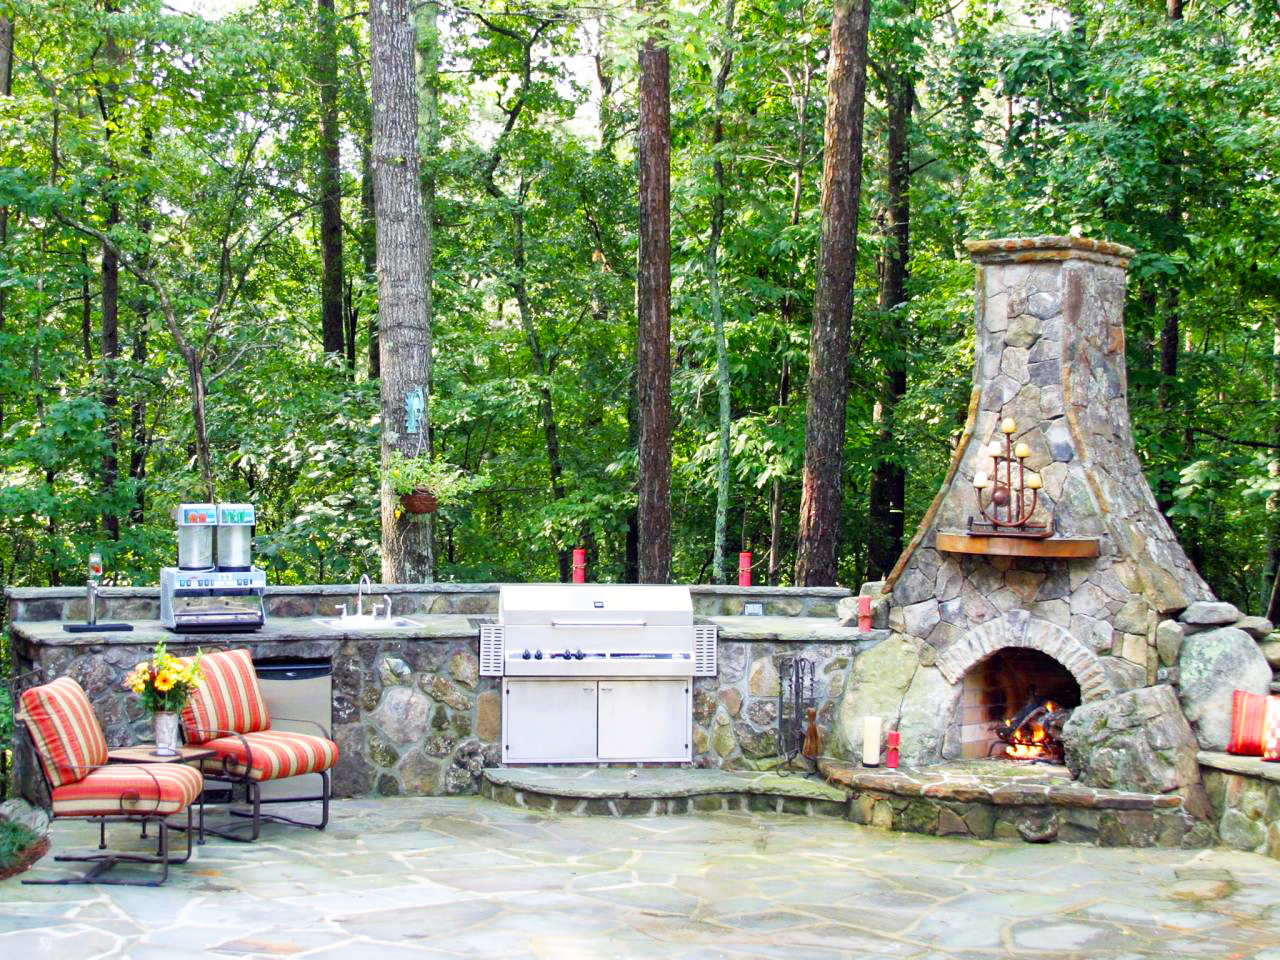 backyard-kitchen-designs-ideas-with-oven-stone-outdoor-kitchen-grills-and-backyard-landscaping-ideas-to-build-bbq-grill